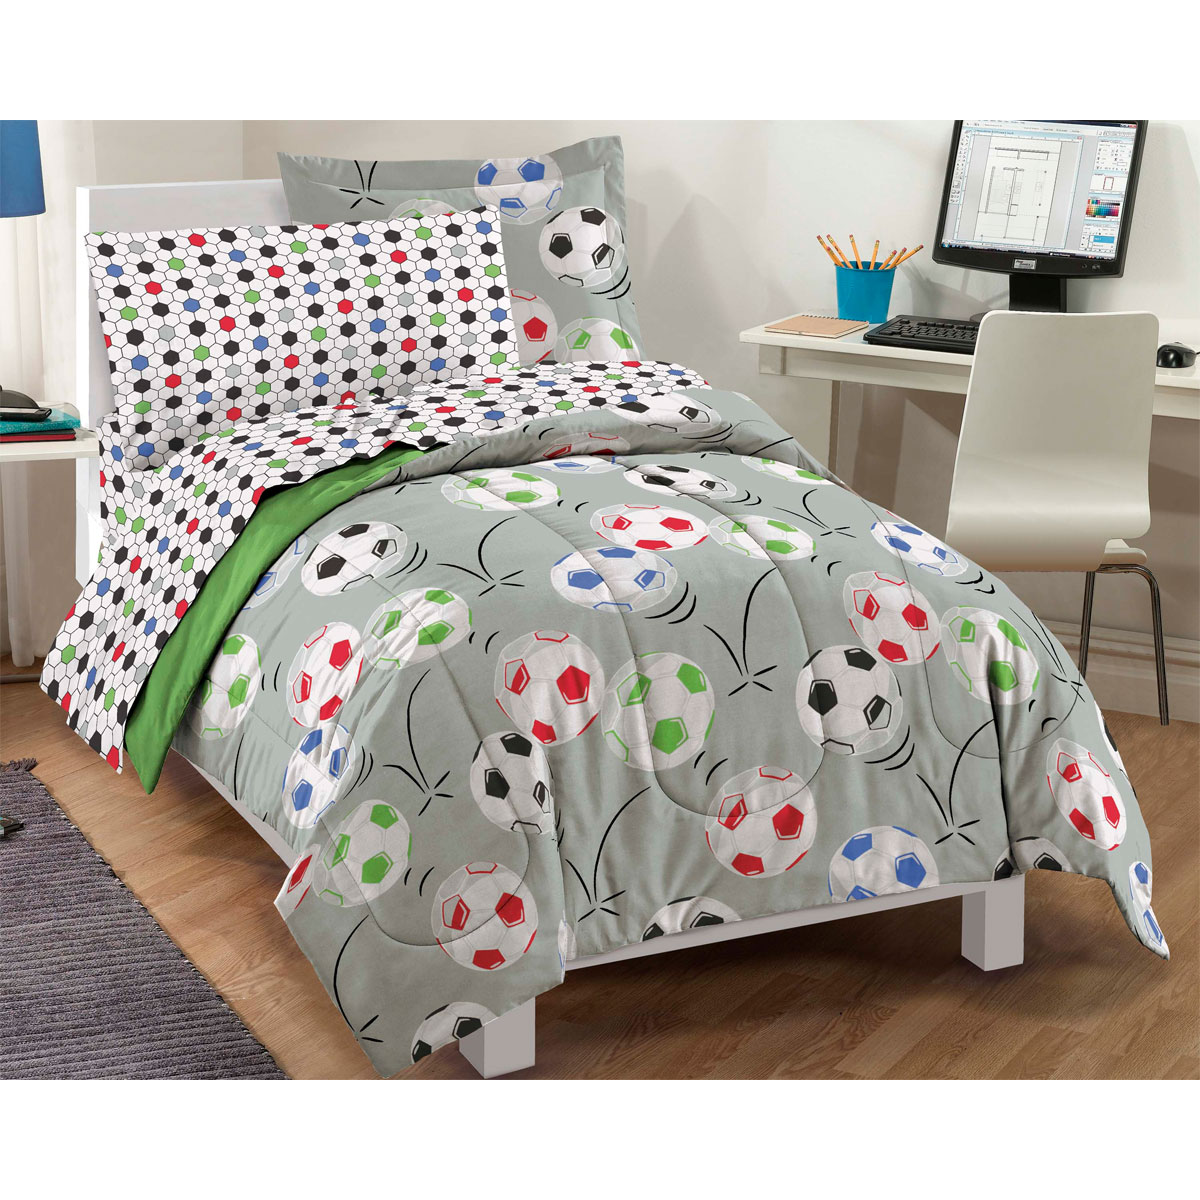 delightful Soccer Comforter Full Part - 13: Dream Factory Soccer Twin Comforter Set Multi - Walmart.com